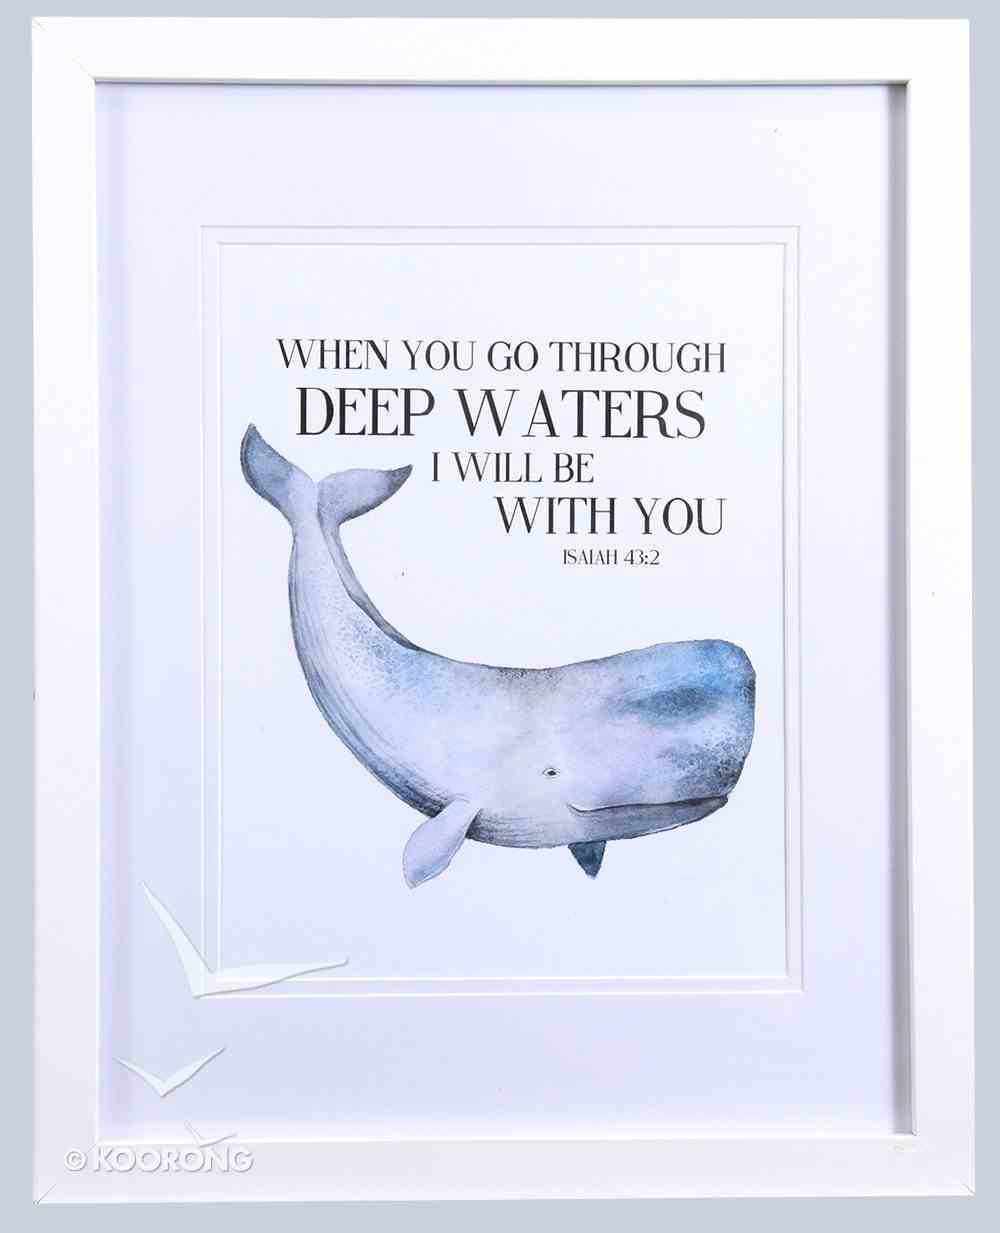 Framed Children's Print: Whale, When You Go Through Deep Waters (Isaiah 43:2) Plaque